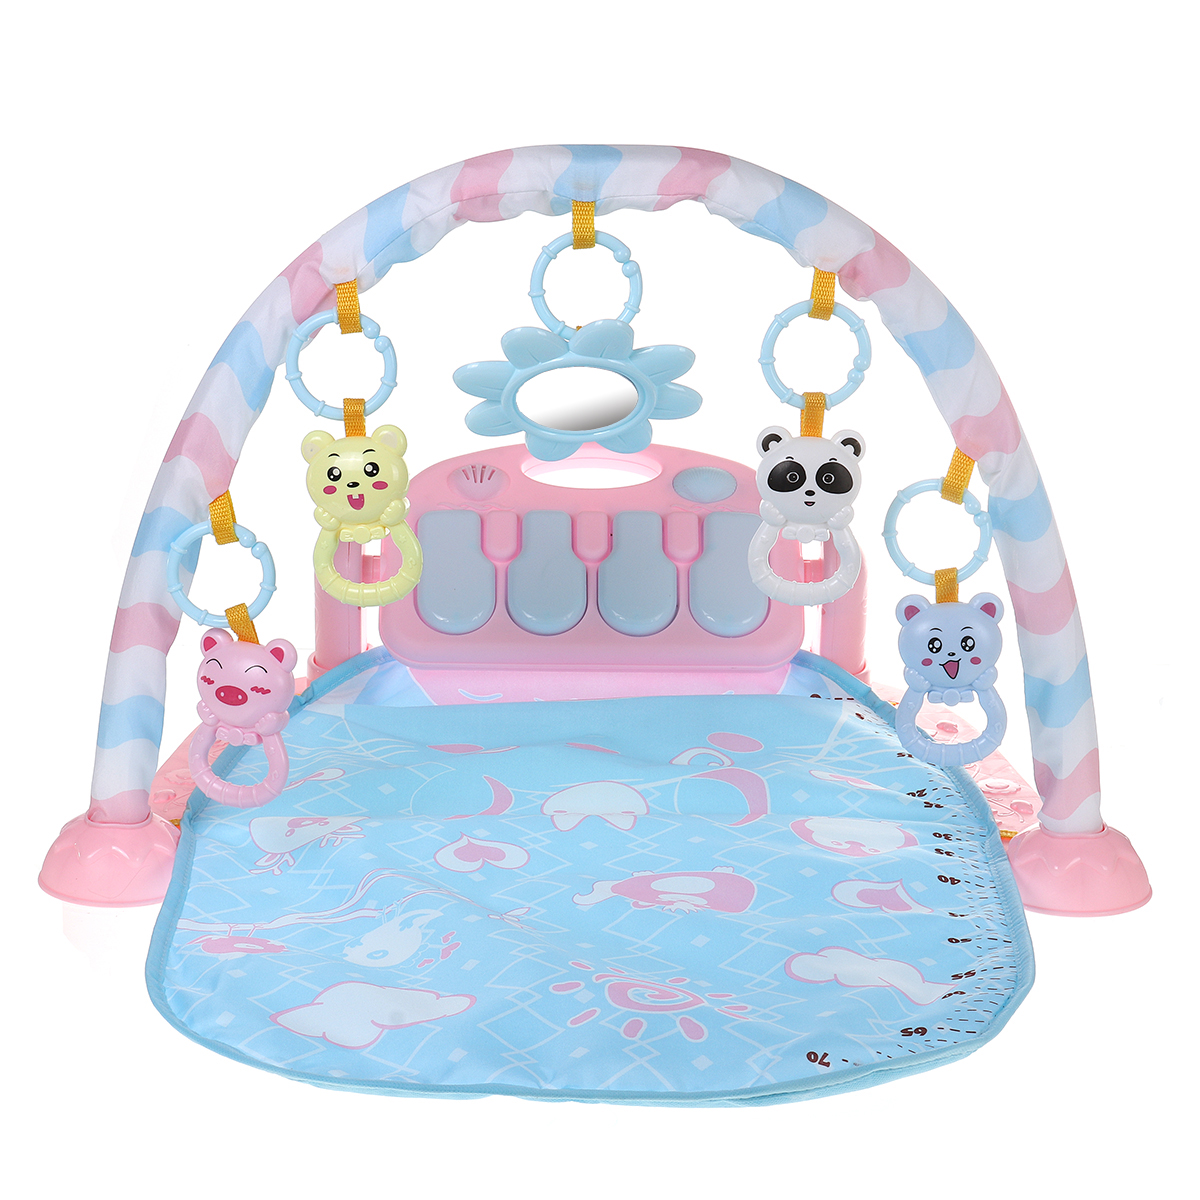 Baby Activity Play Mat Baby Gym Educational Fitness Frame Multi-bracket Baby Toys Music Piano Game Crawl Mats Rug